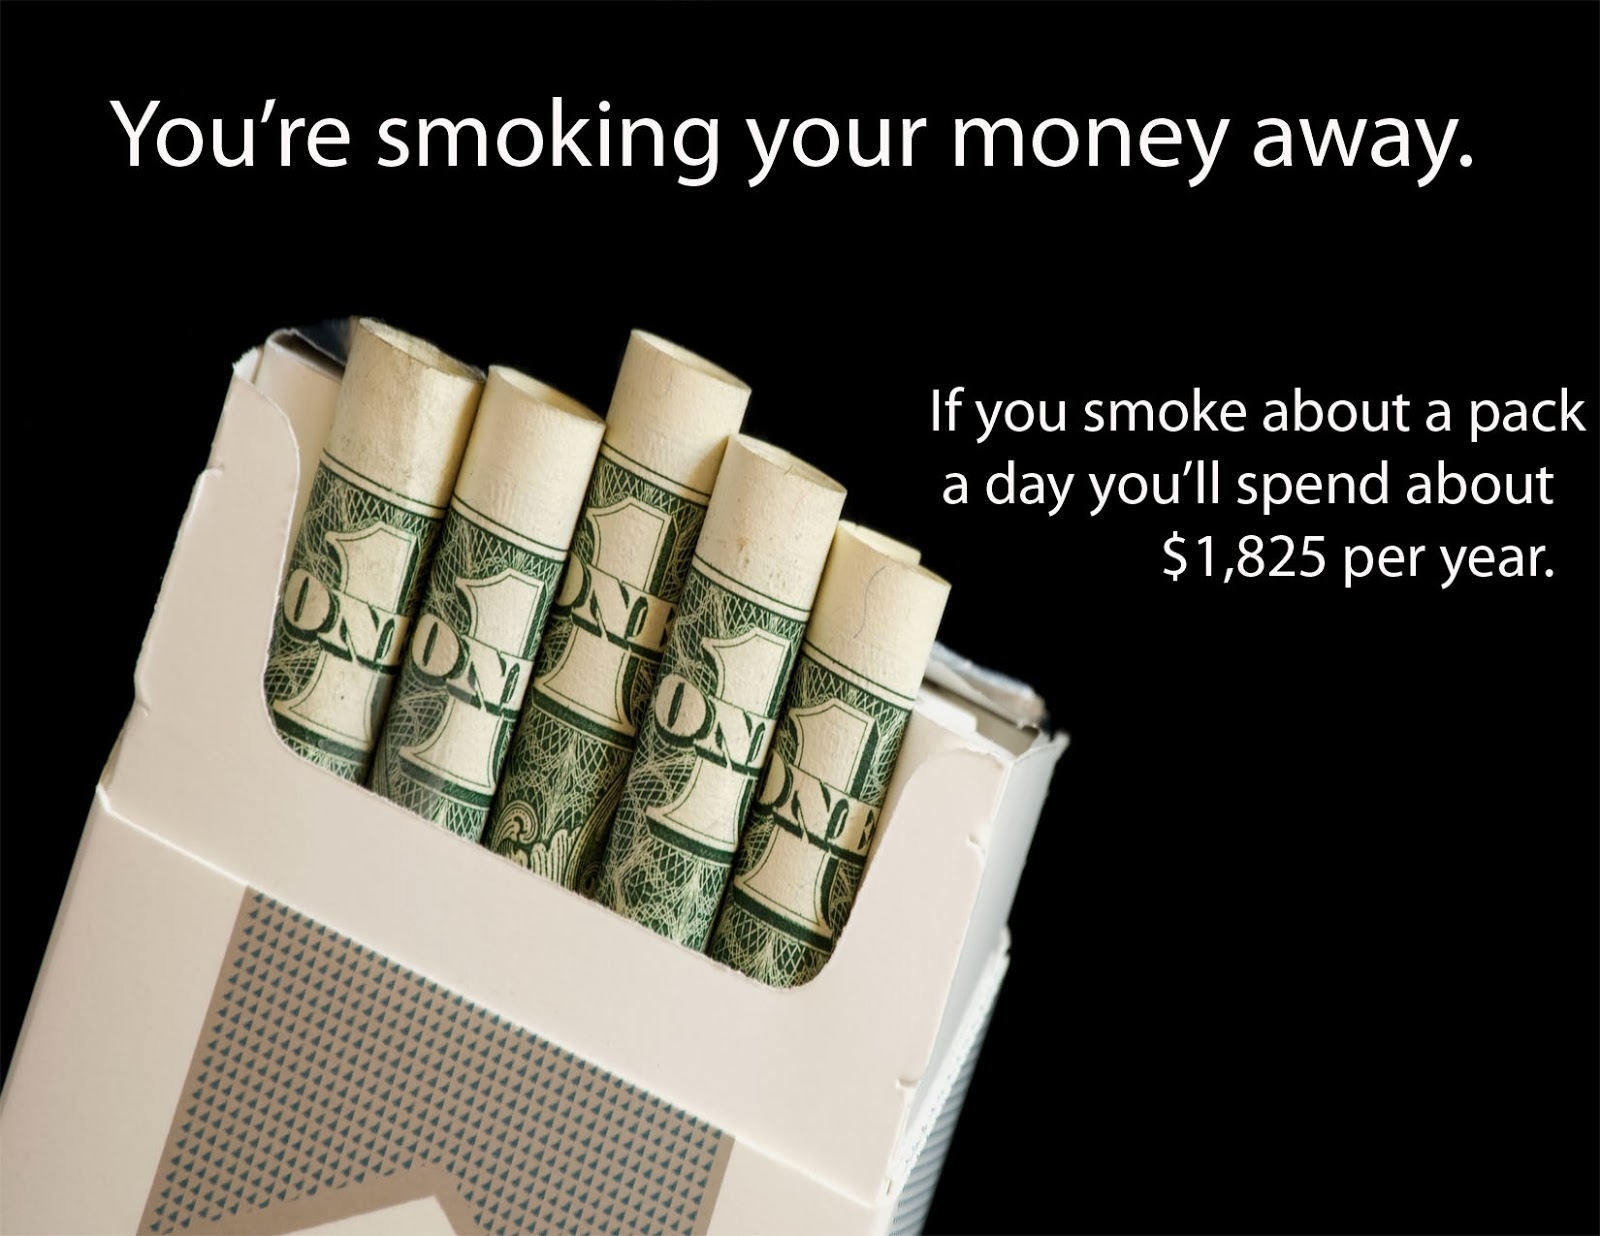 tobacco and smoking Access smoking facts and figures, including information on tobacco products, labelling, the effects of smoking, second-hand smoke, prevention.